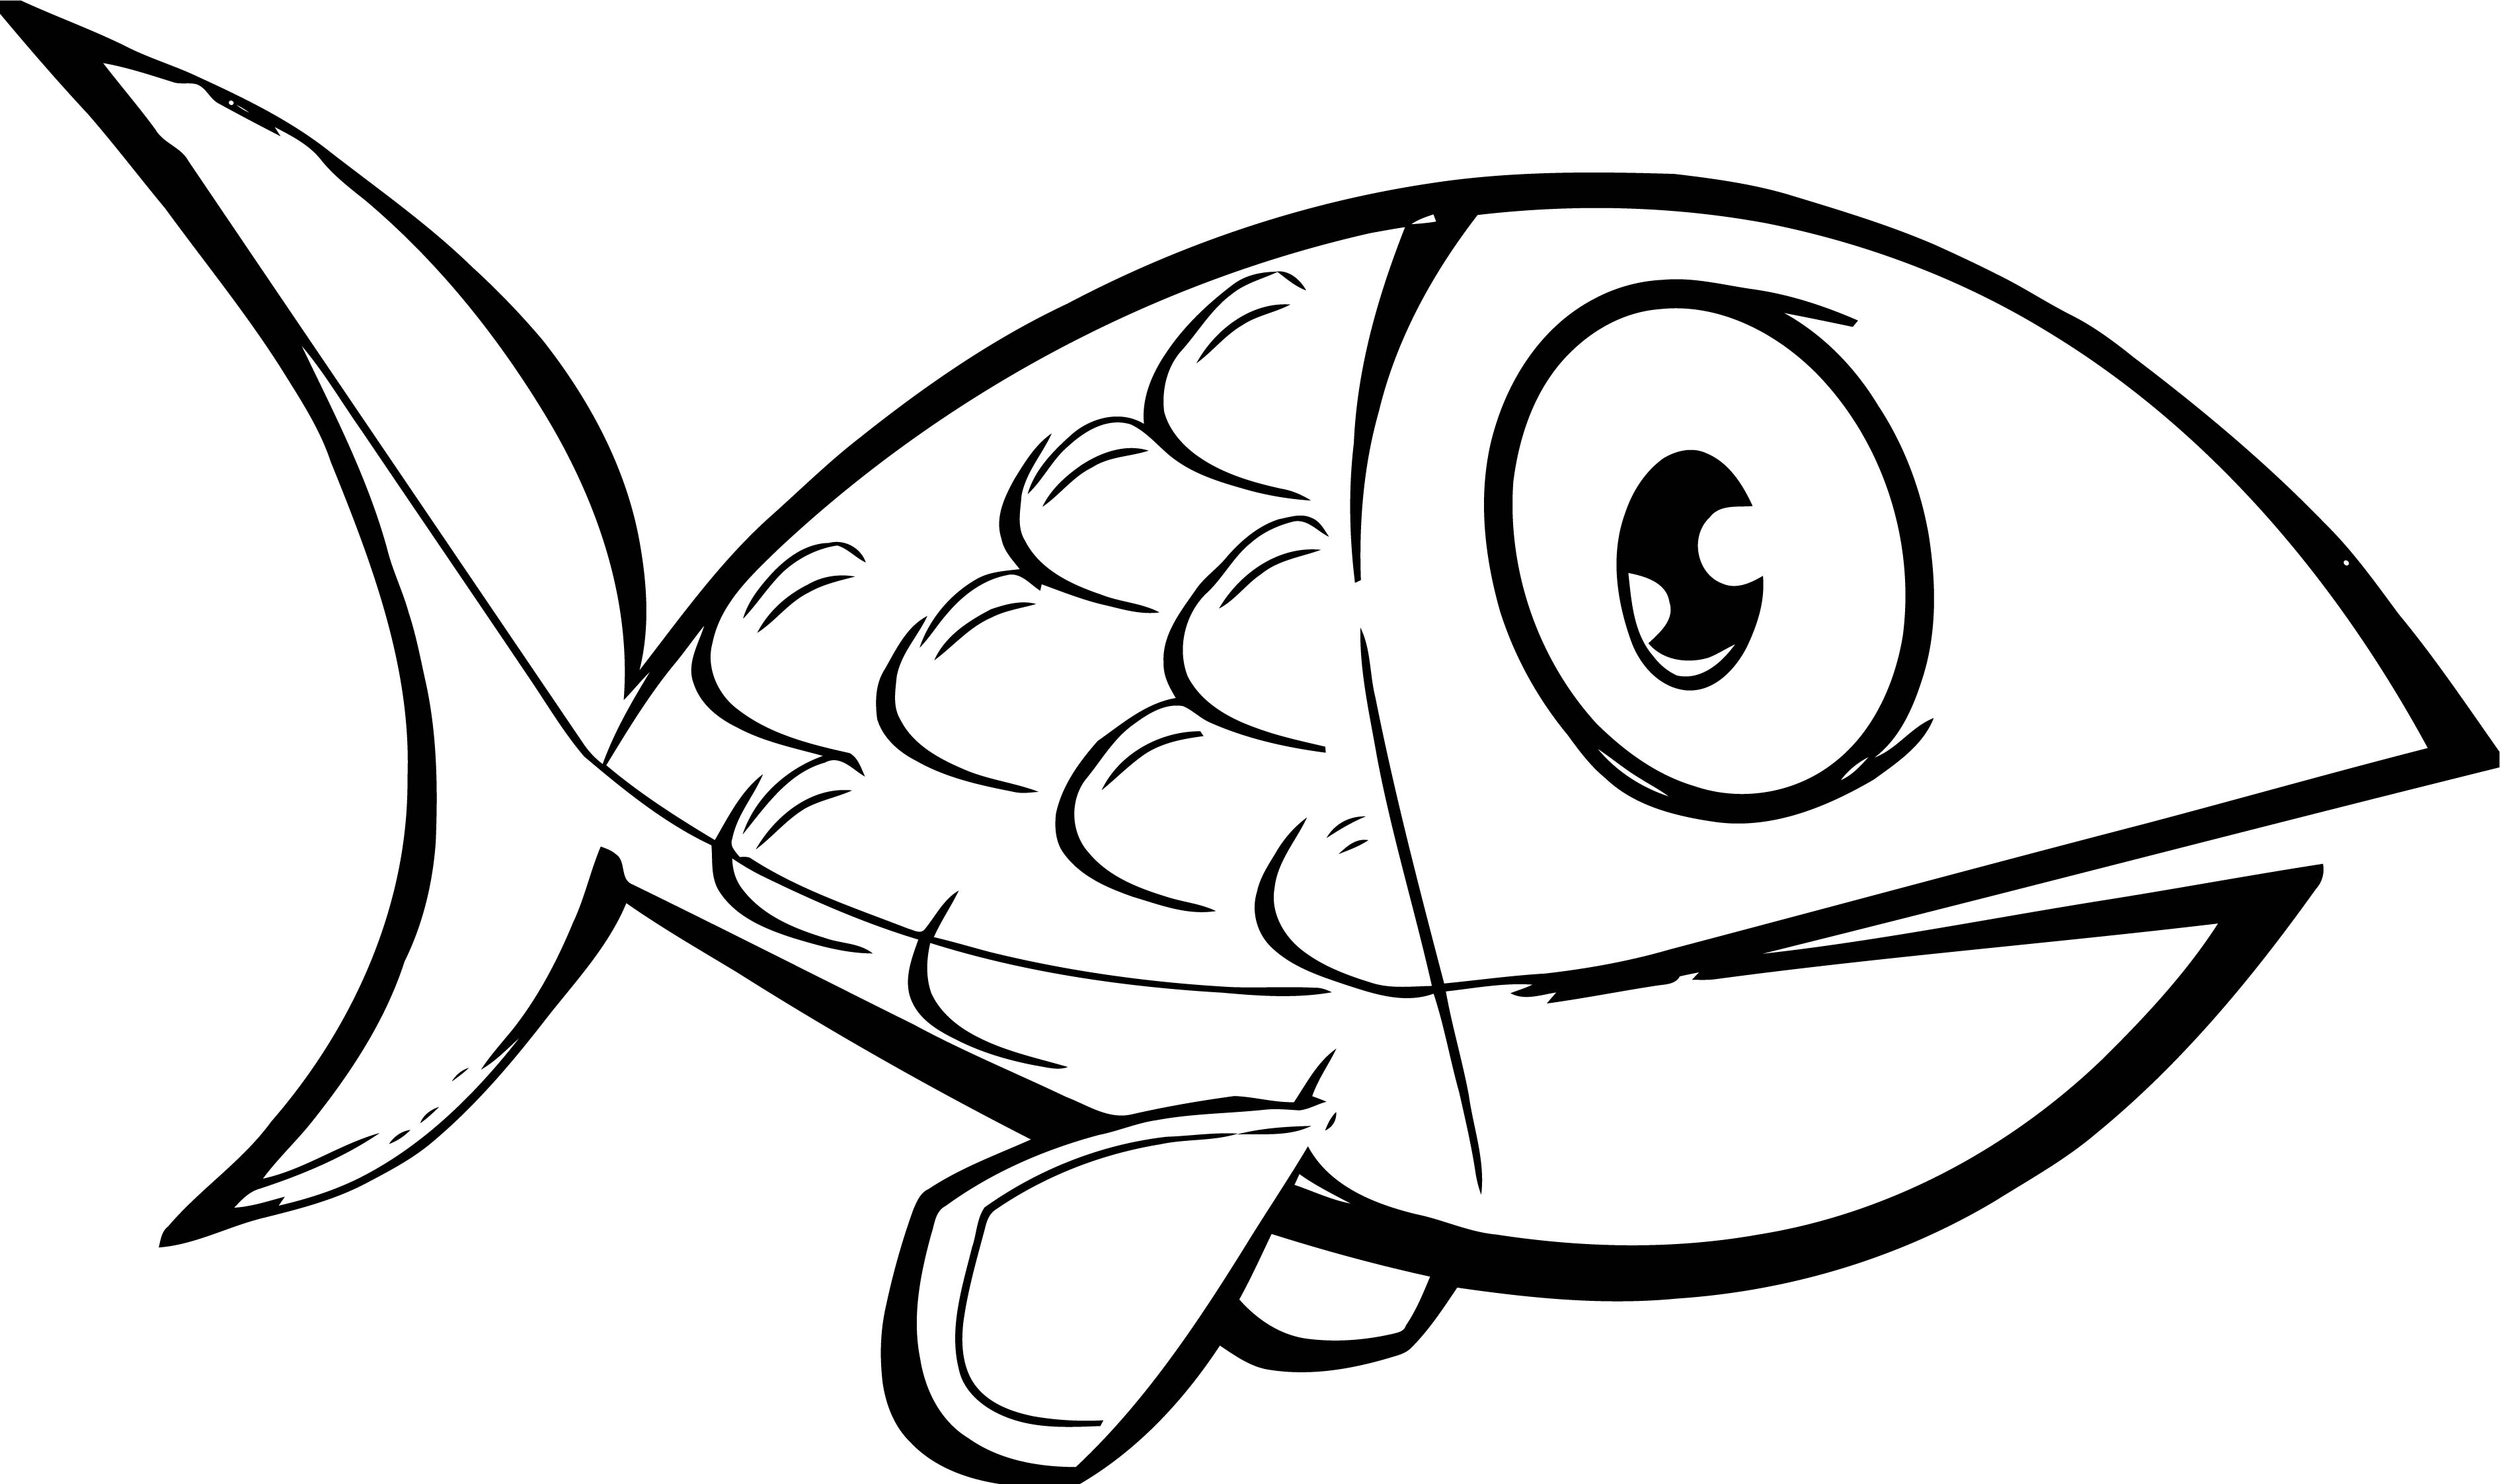 Fish Coloring Page Wecoloringpage 061